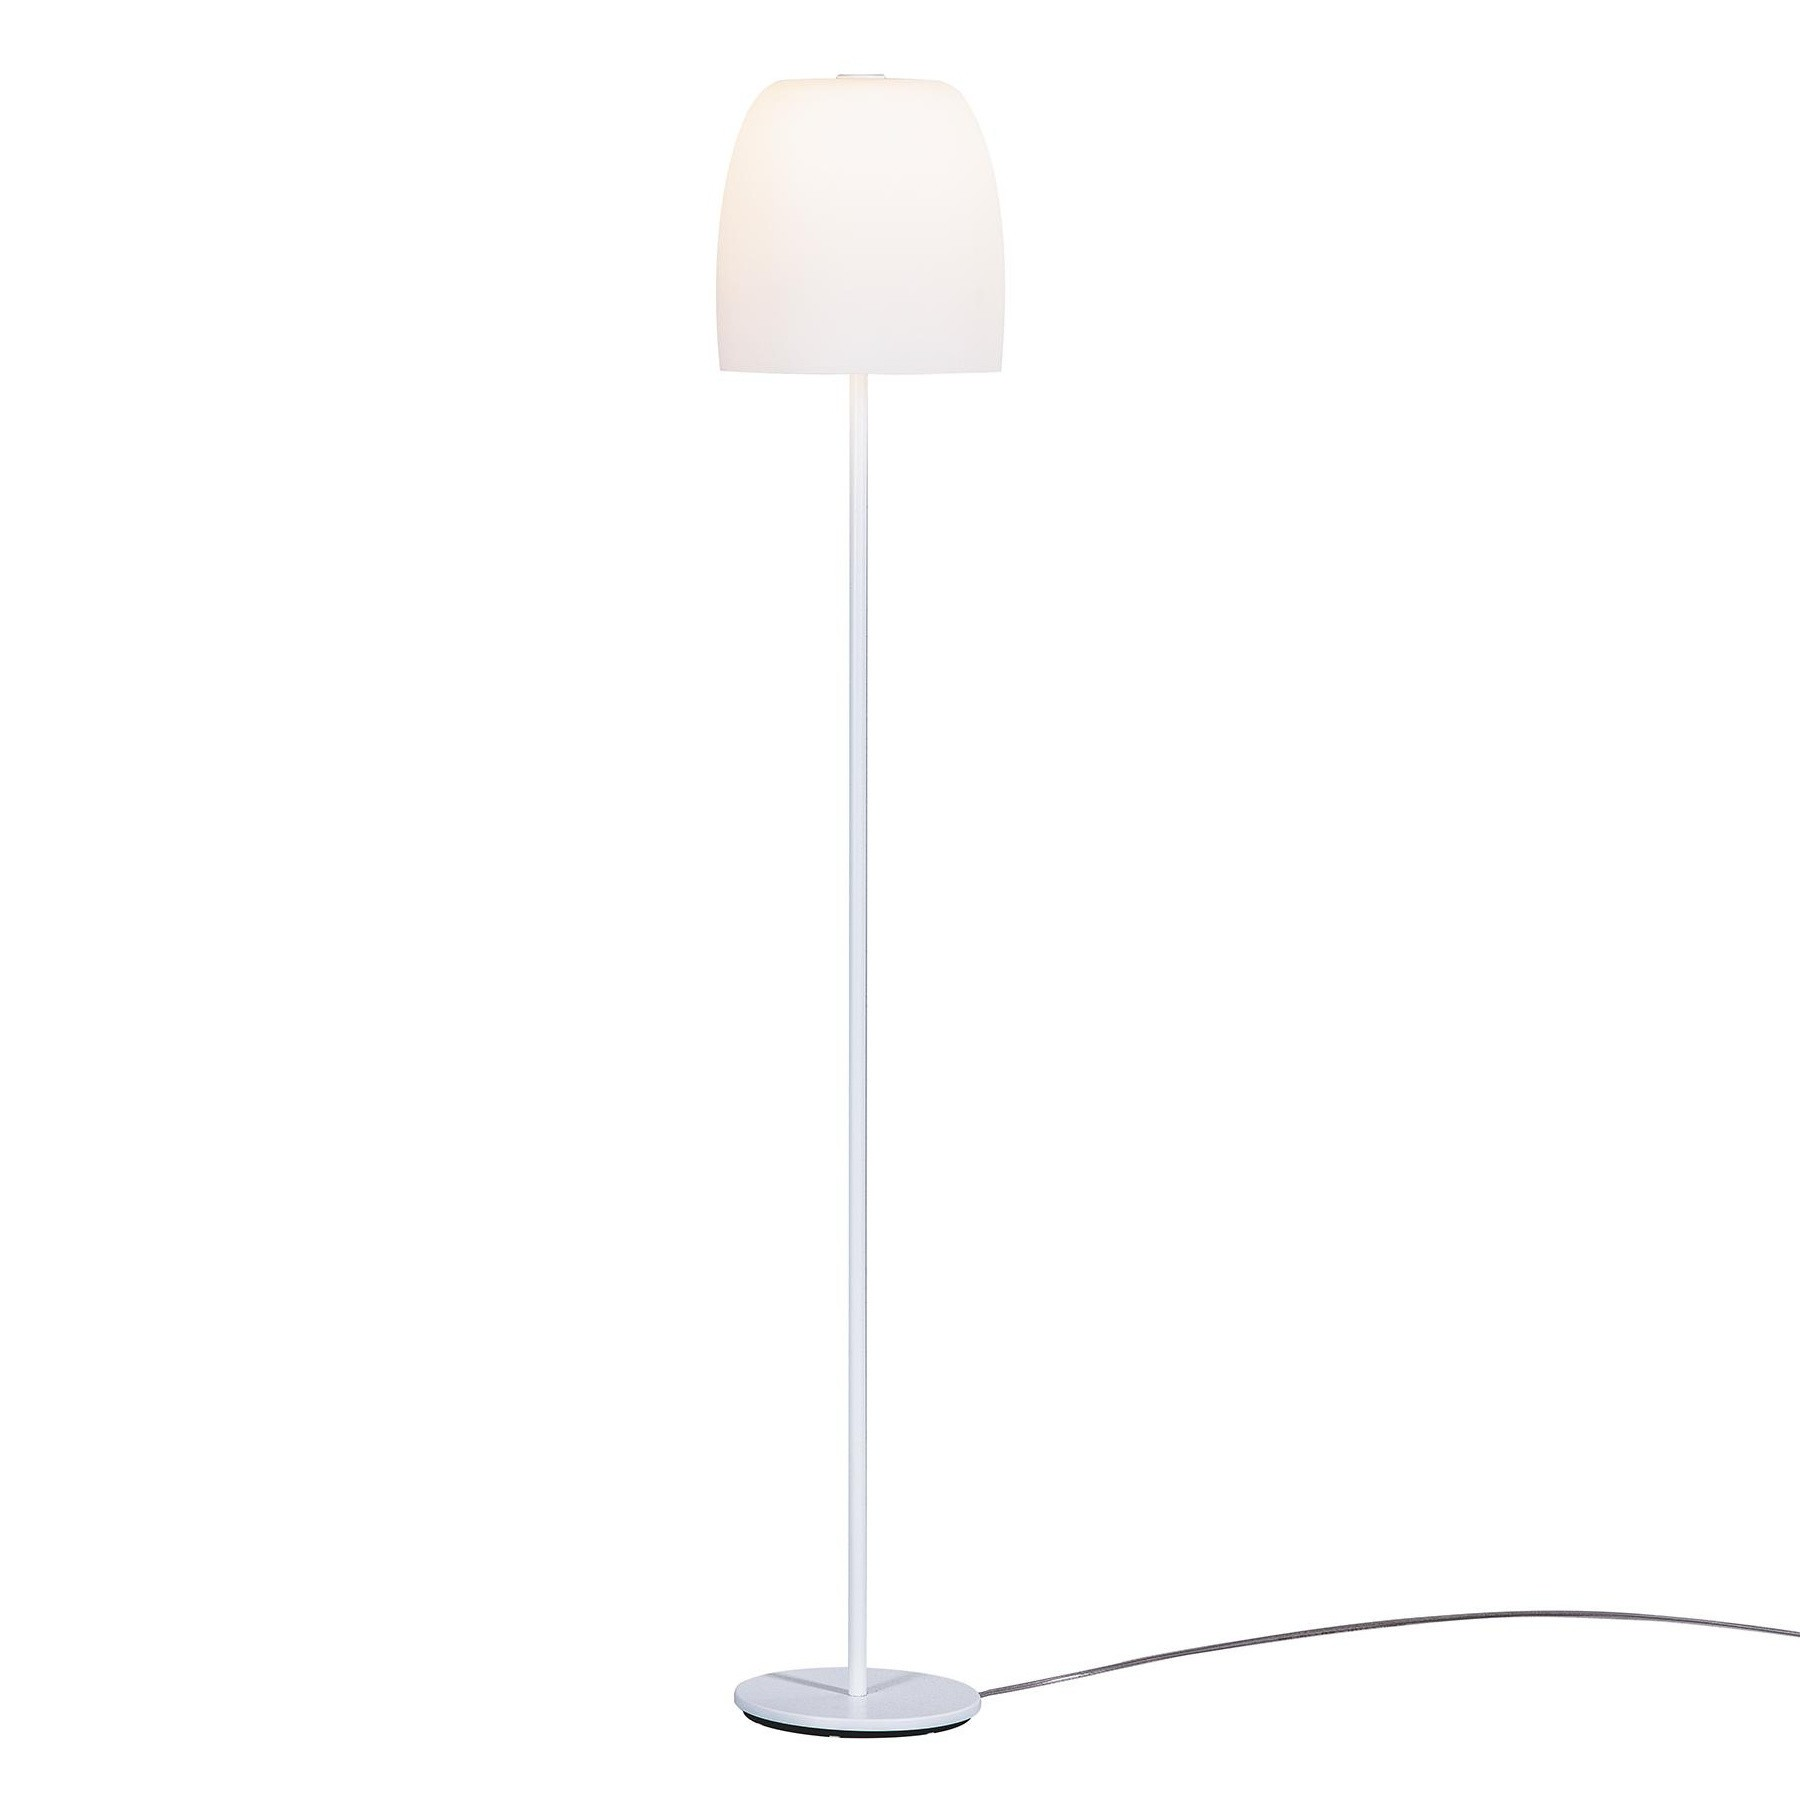 prandina notte f1 floor lamp ambientedirect rh ambientedirect com